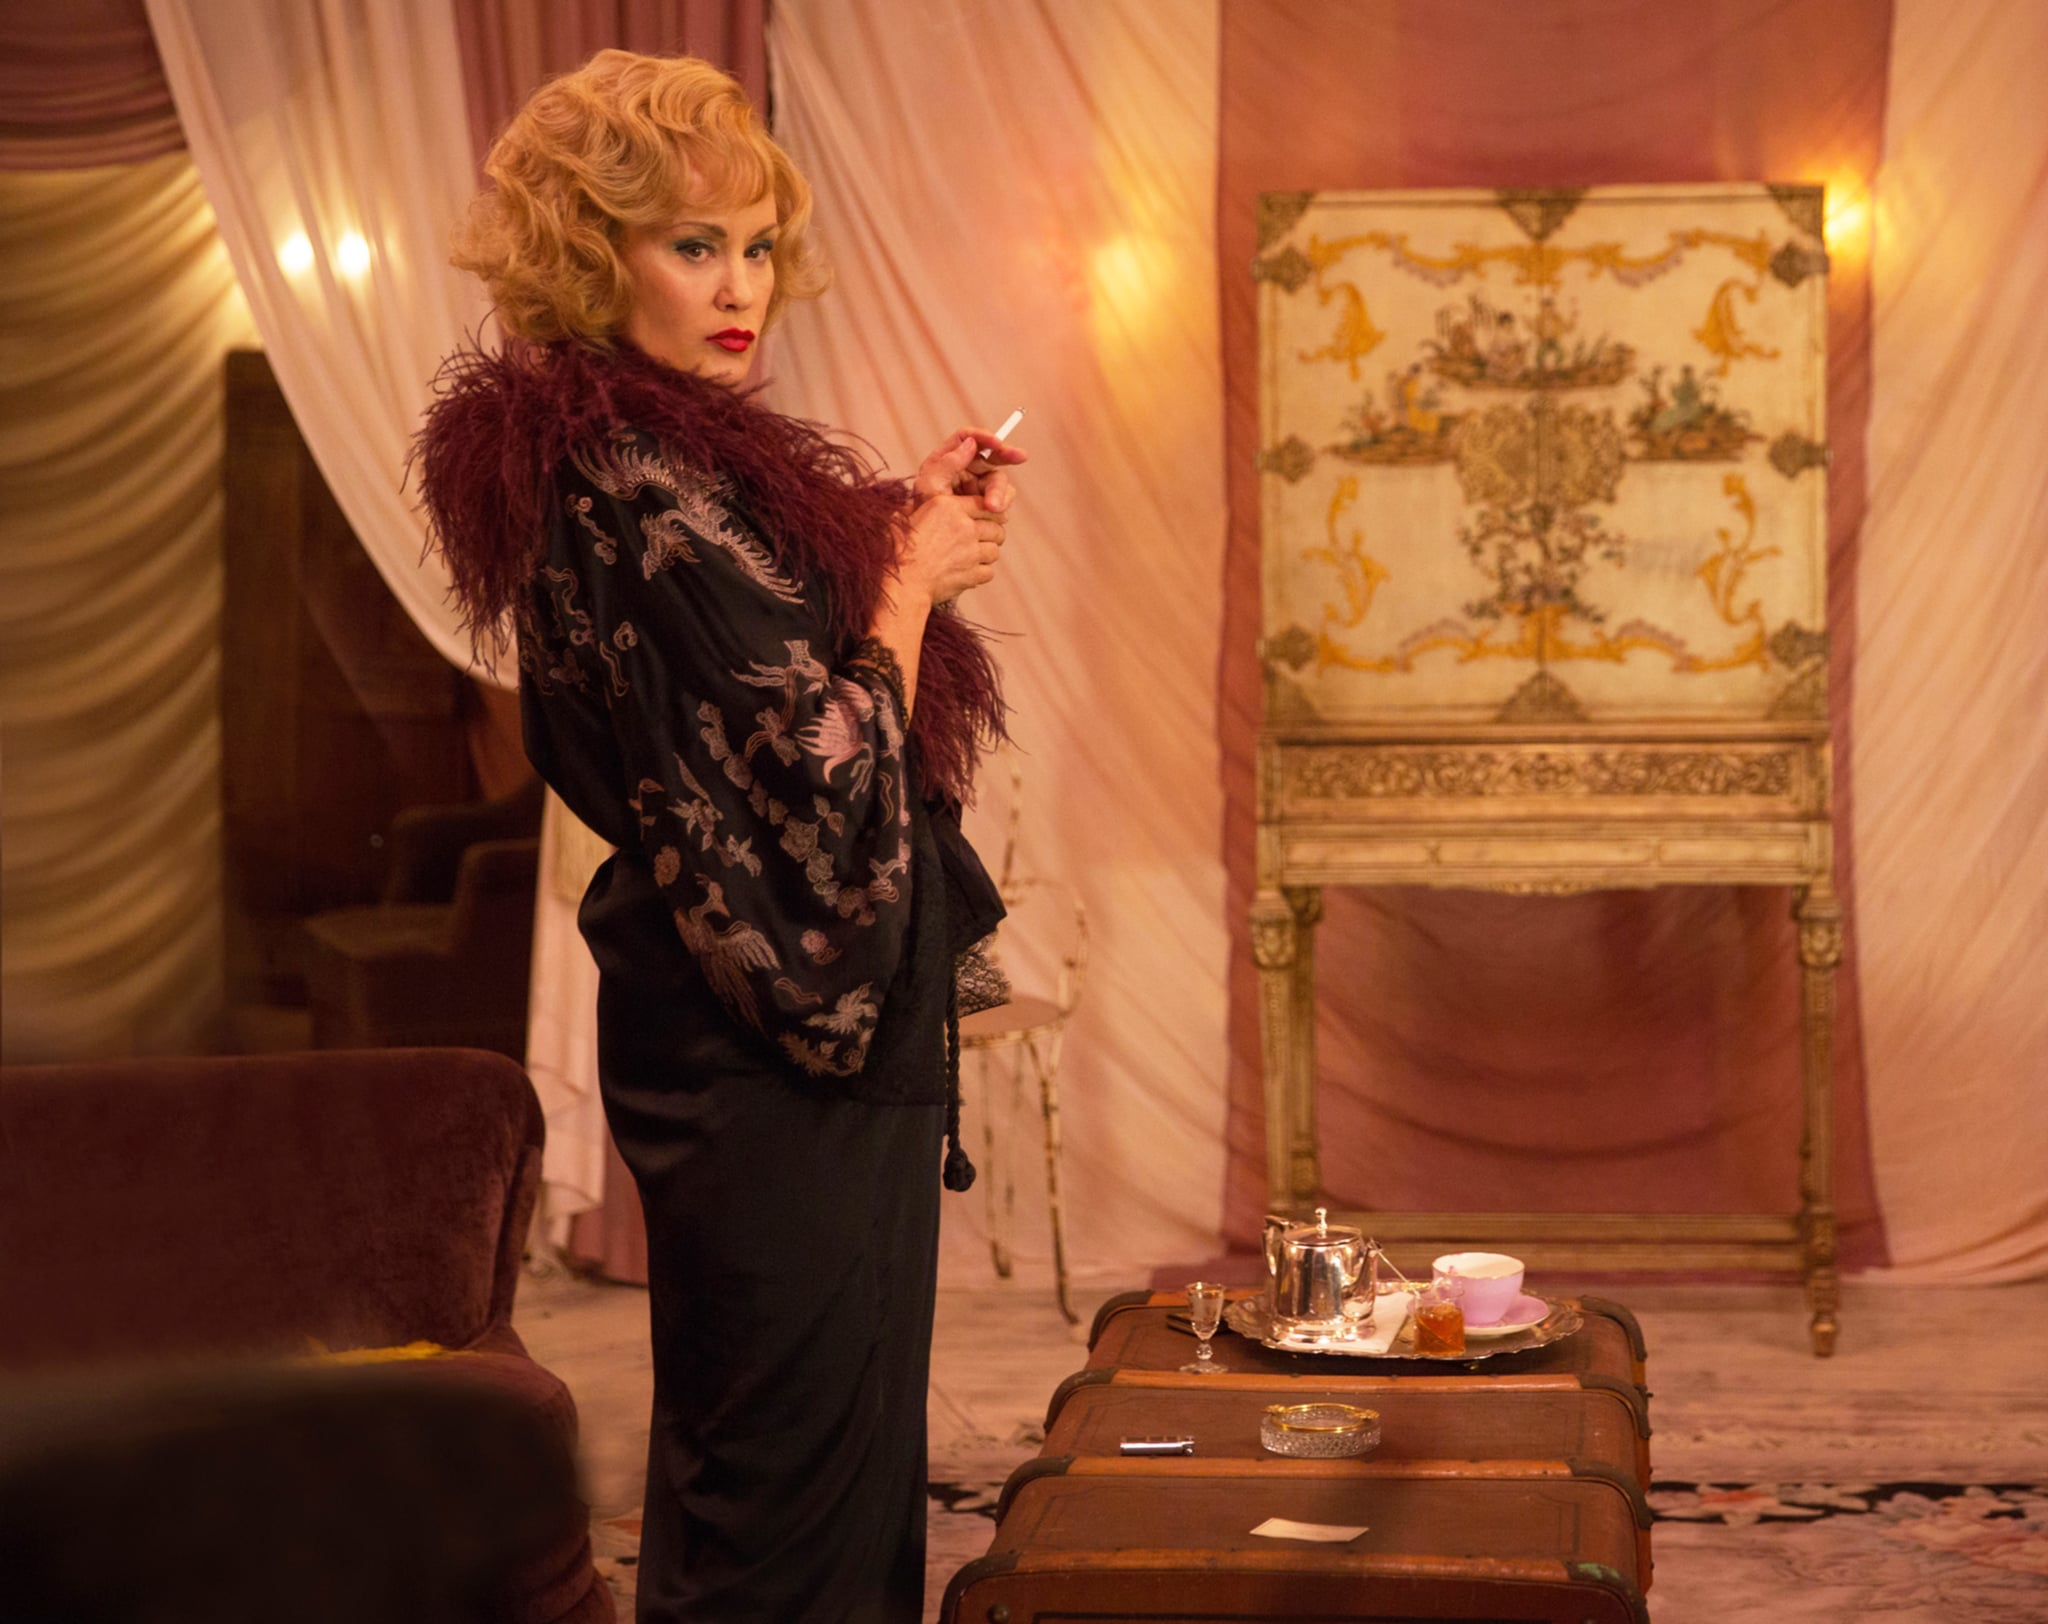 AMERICAN HORROR STORY: FREAK SHOW, Jessica Lange in 'Pink Cupcakes' (Season 4, Episode 5, aired November 5, 2014). ph: Michele K. Short/FX/courtesy Everett Collection